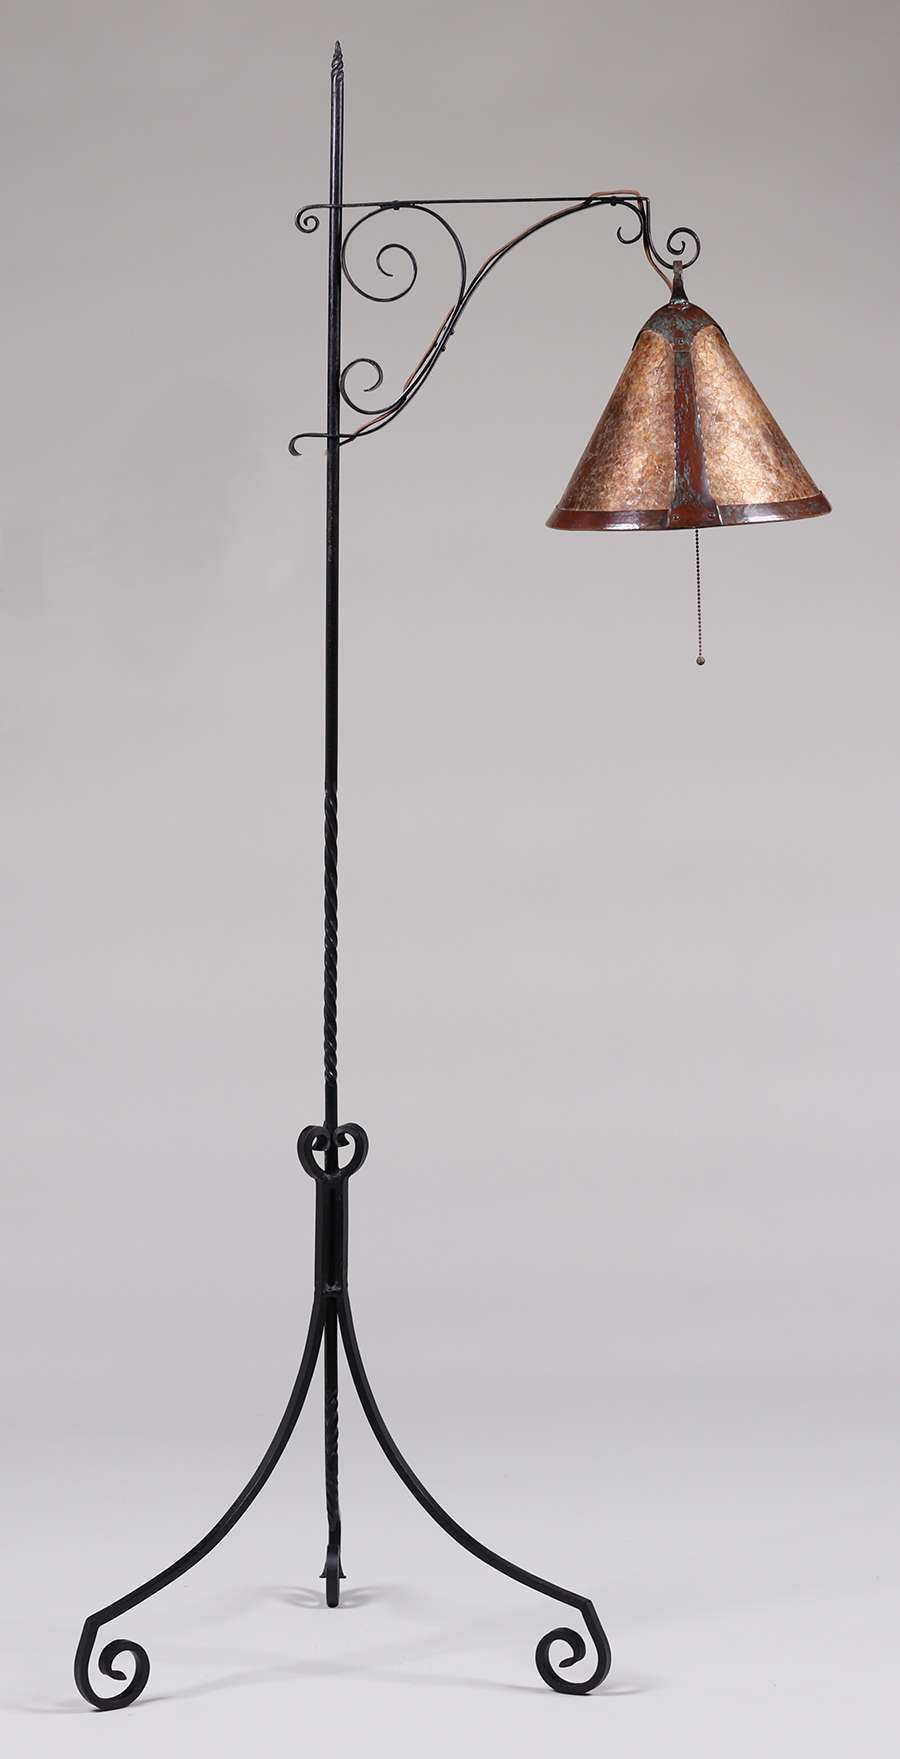 Harry Dixon Hand Forged Iron Copper Amp Mica Floor Lamp